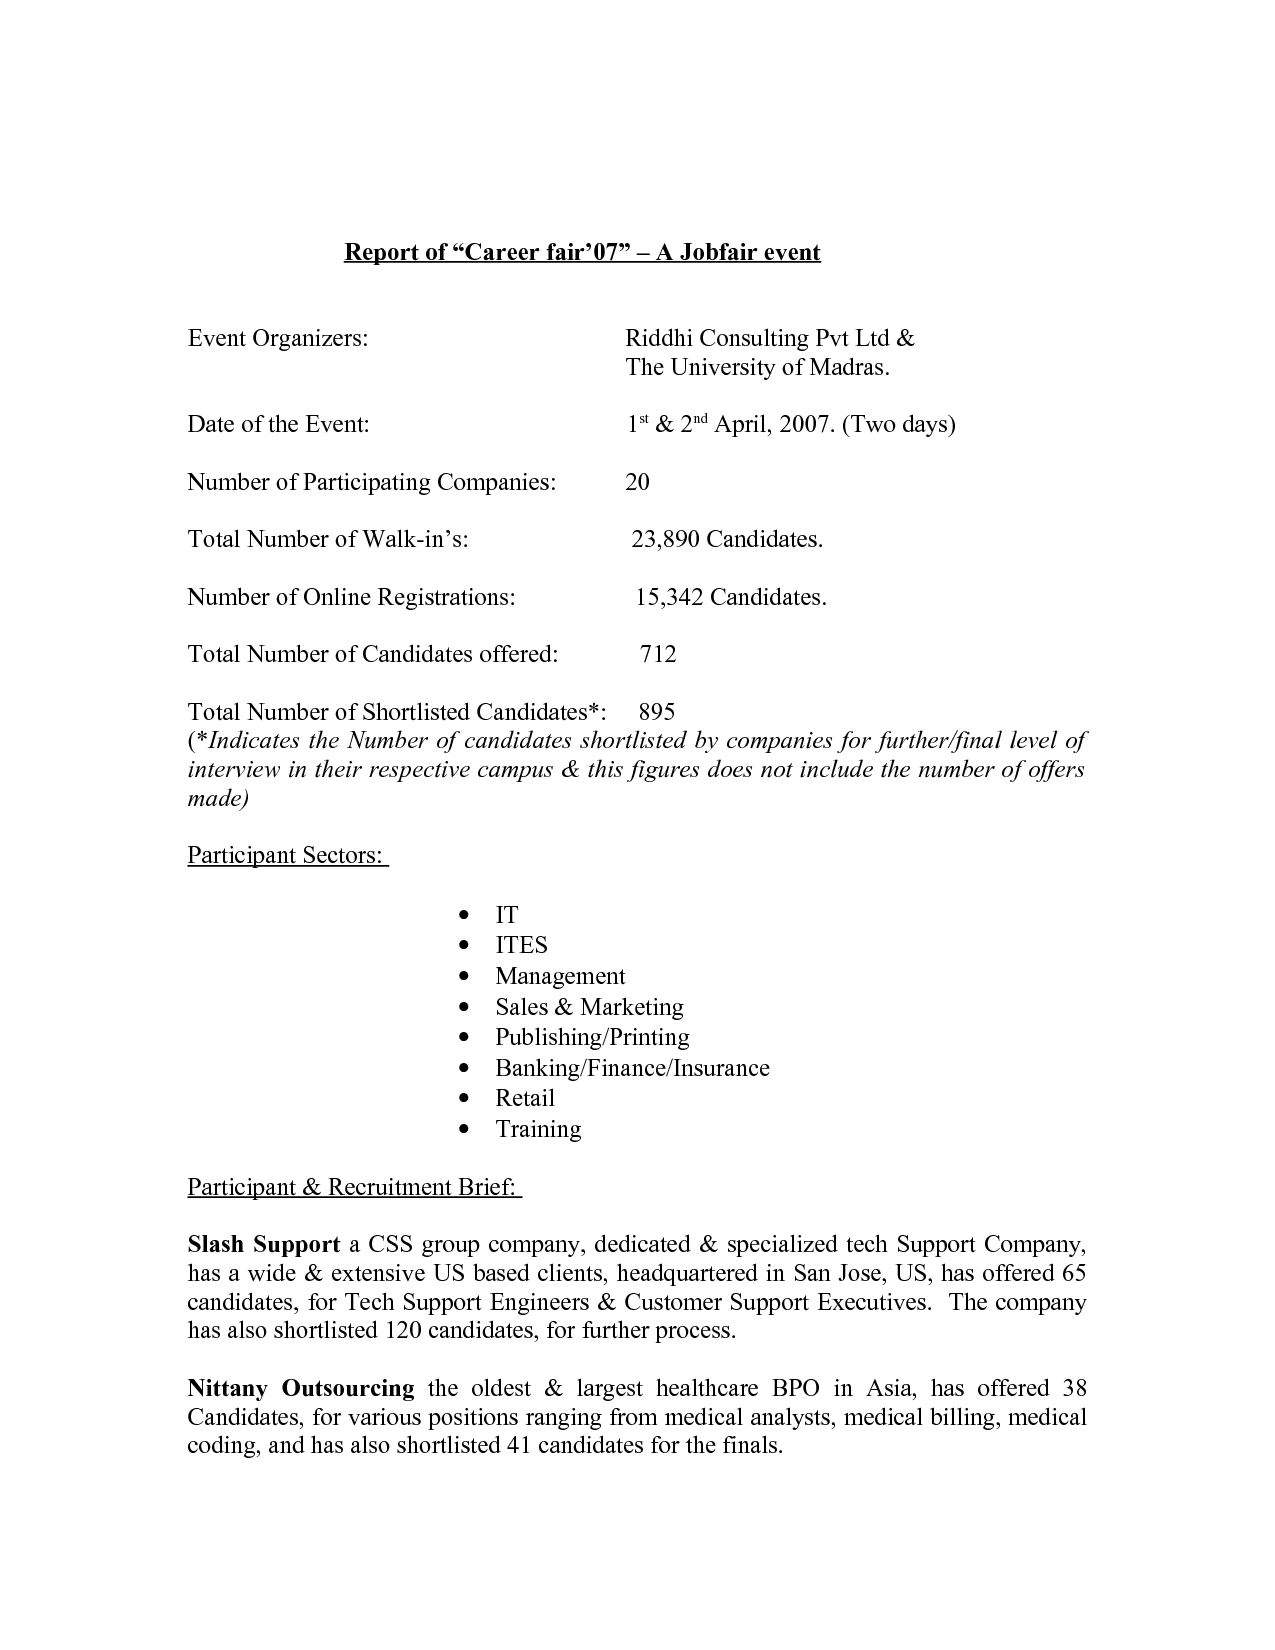 Resume Format For Freshers Free Download Resume Format For Freshers Free  Download, Resume Format For Freshers Free Download In Ms Word, Resume Format  For ...